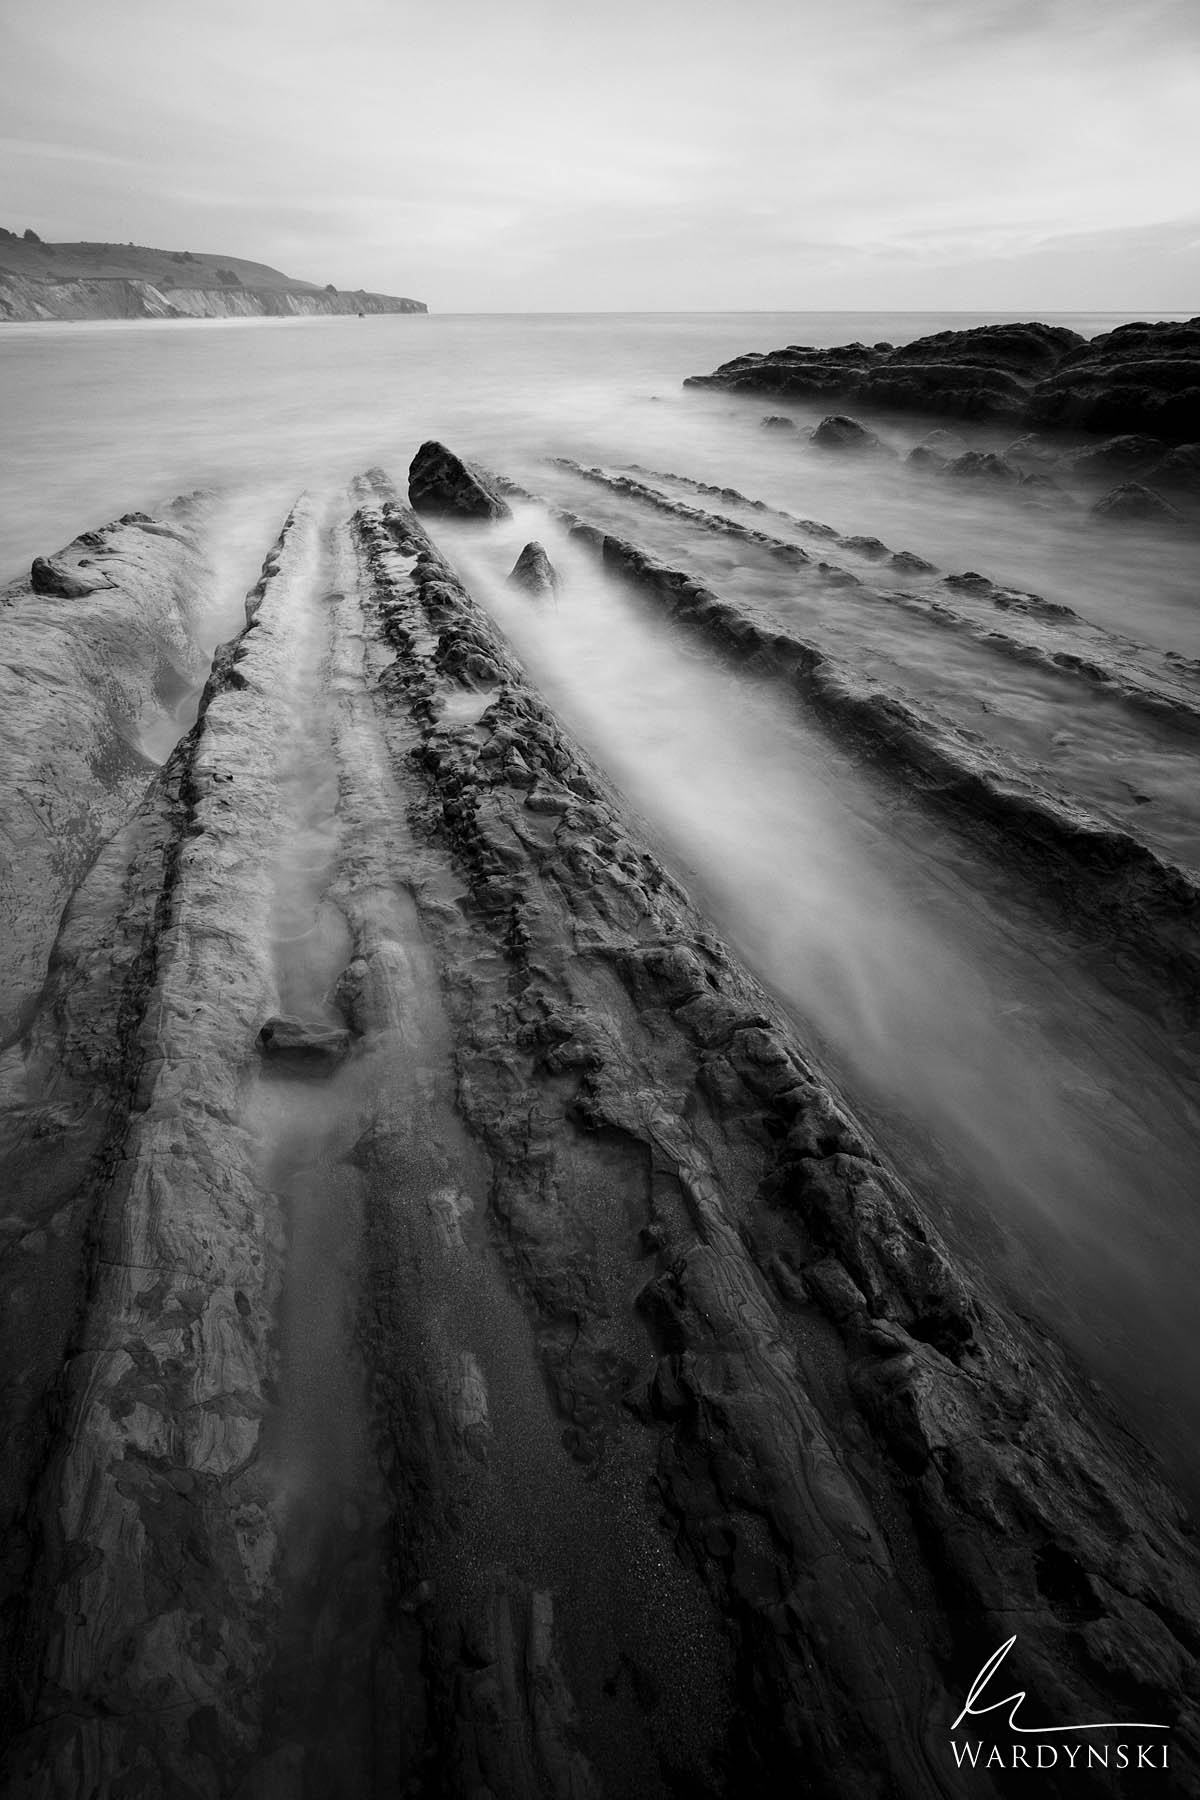 Black and White Fine Art Print | Limited Edition of 25  Veins of Sandstone lead into the Pacific Ocean in Northern California...